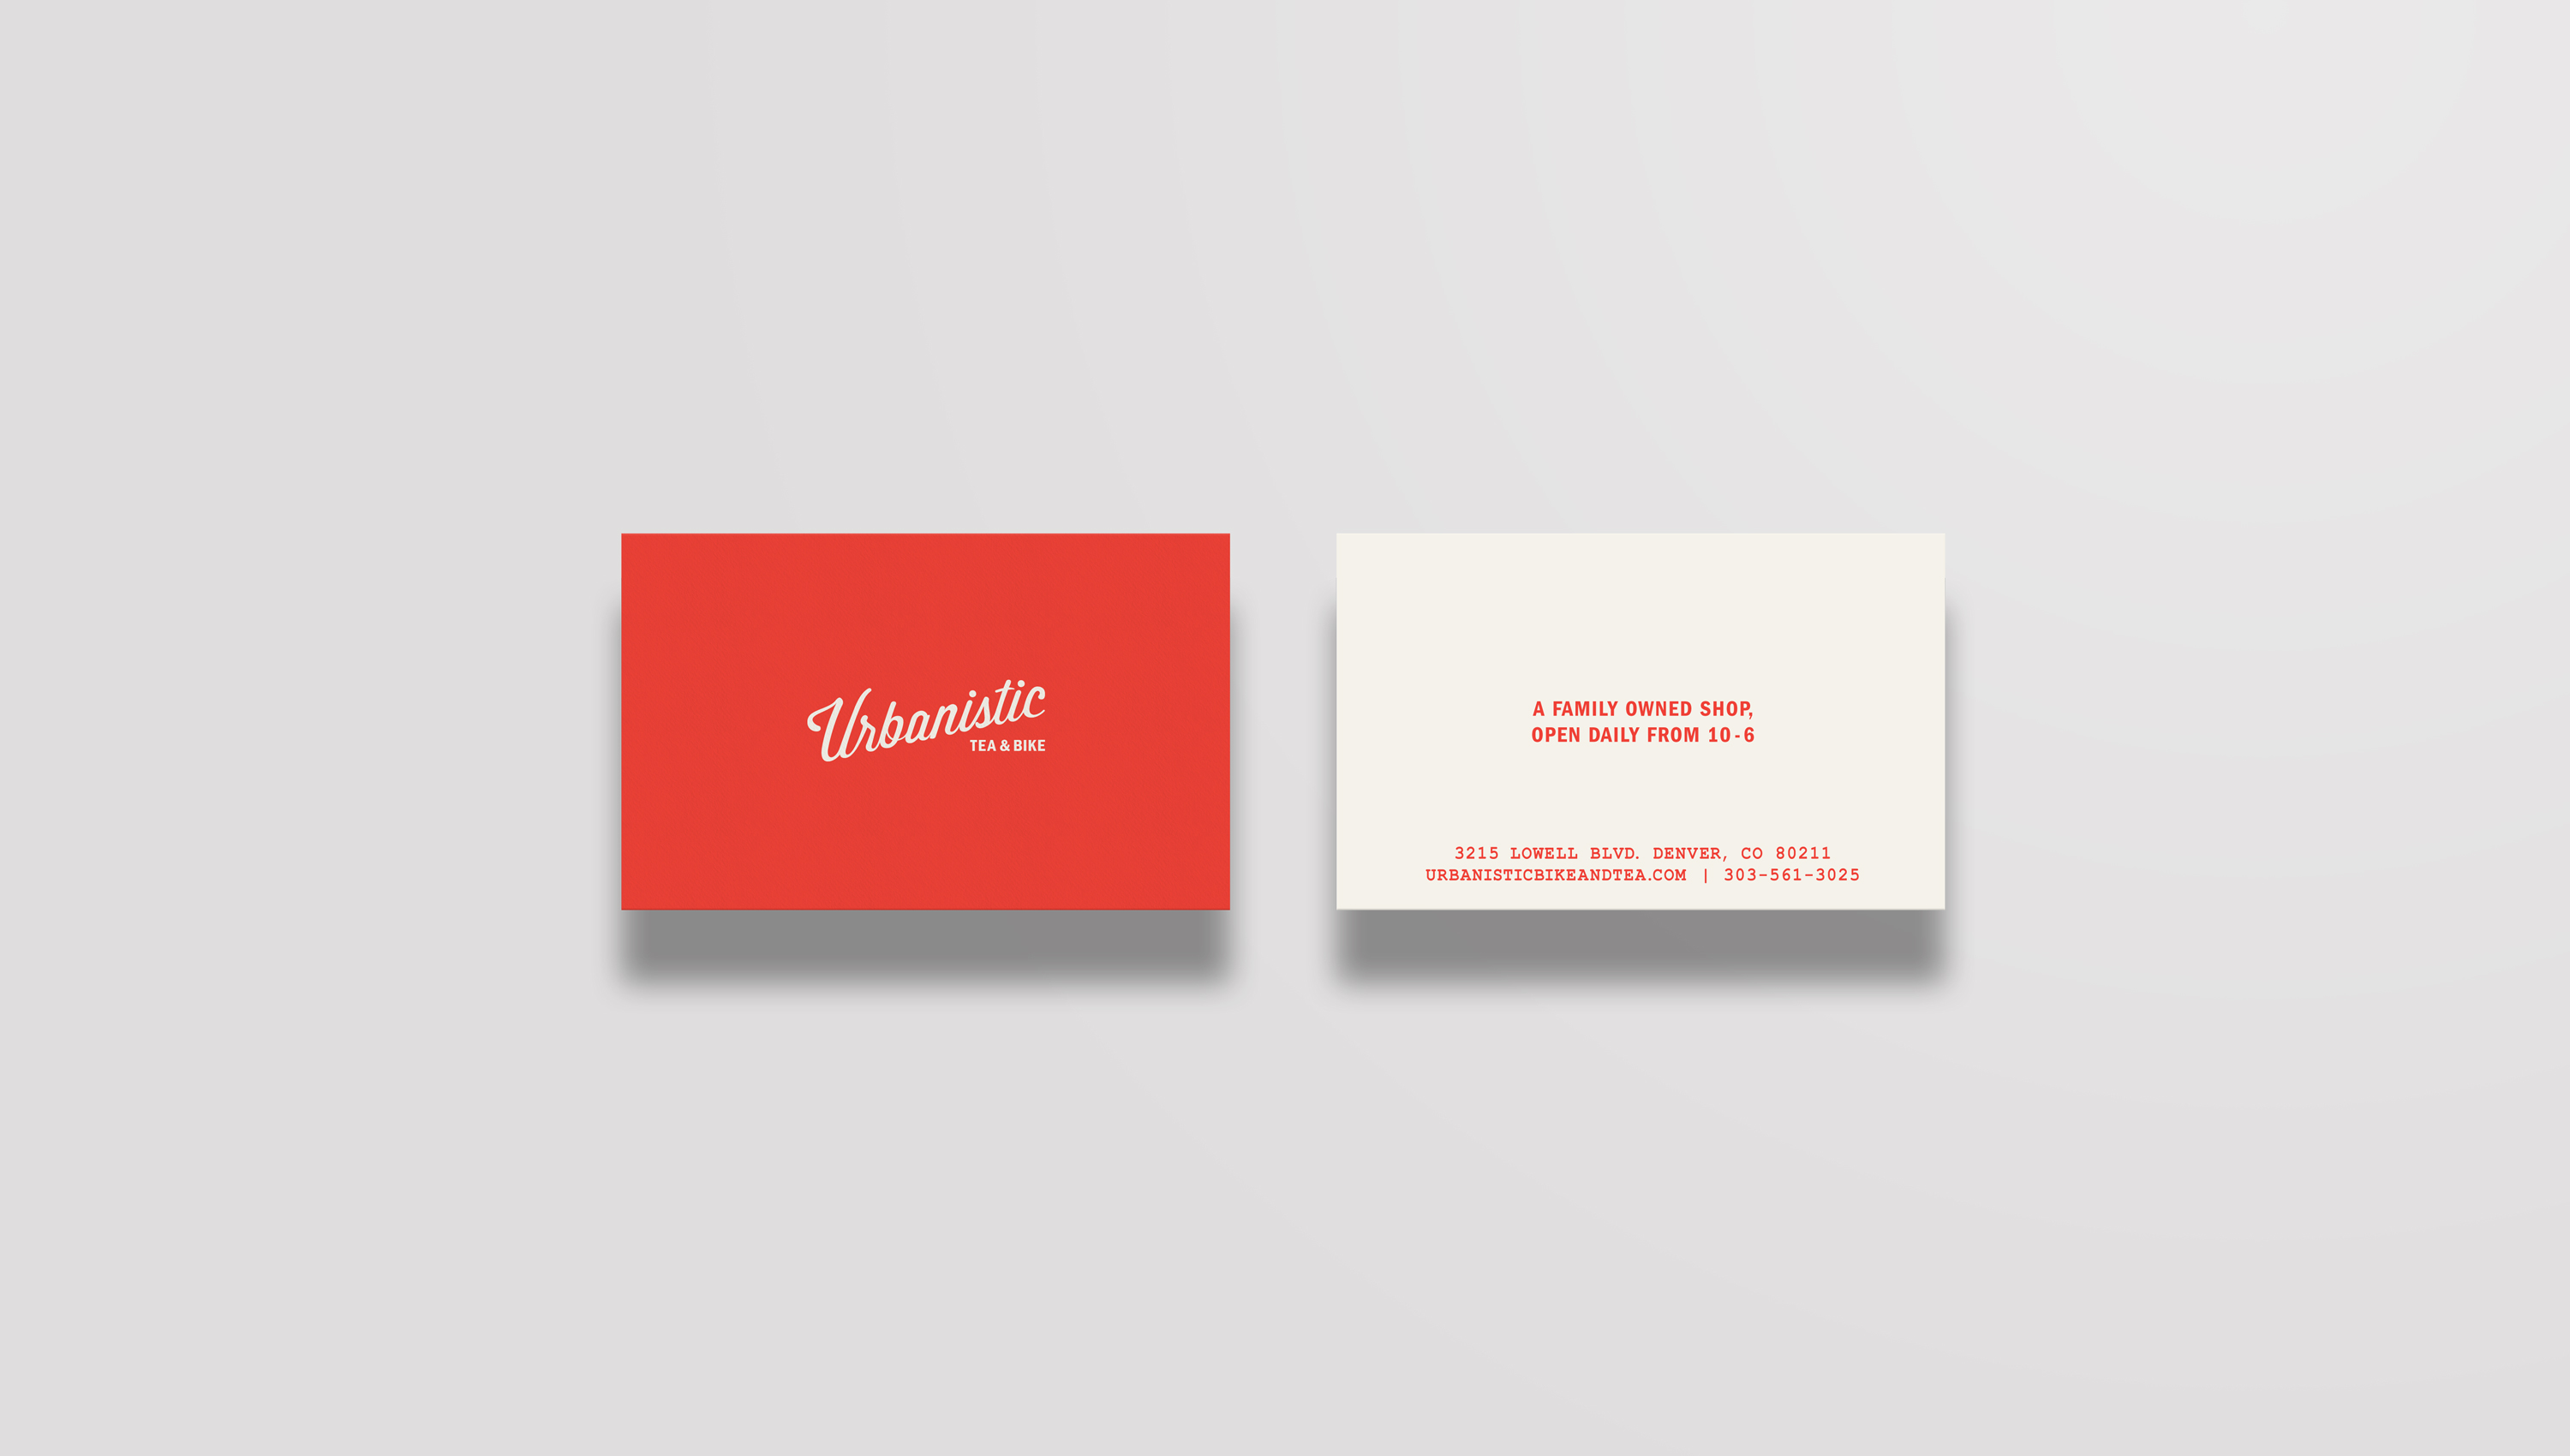 urb_business_cards_two